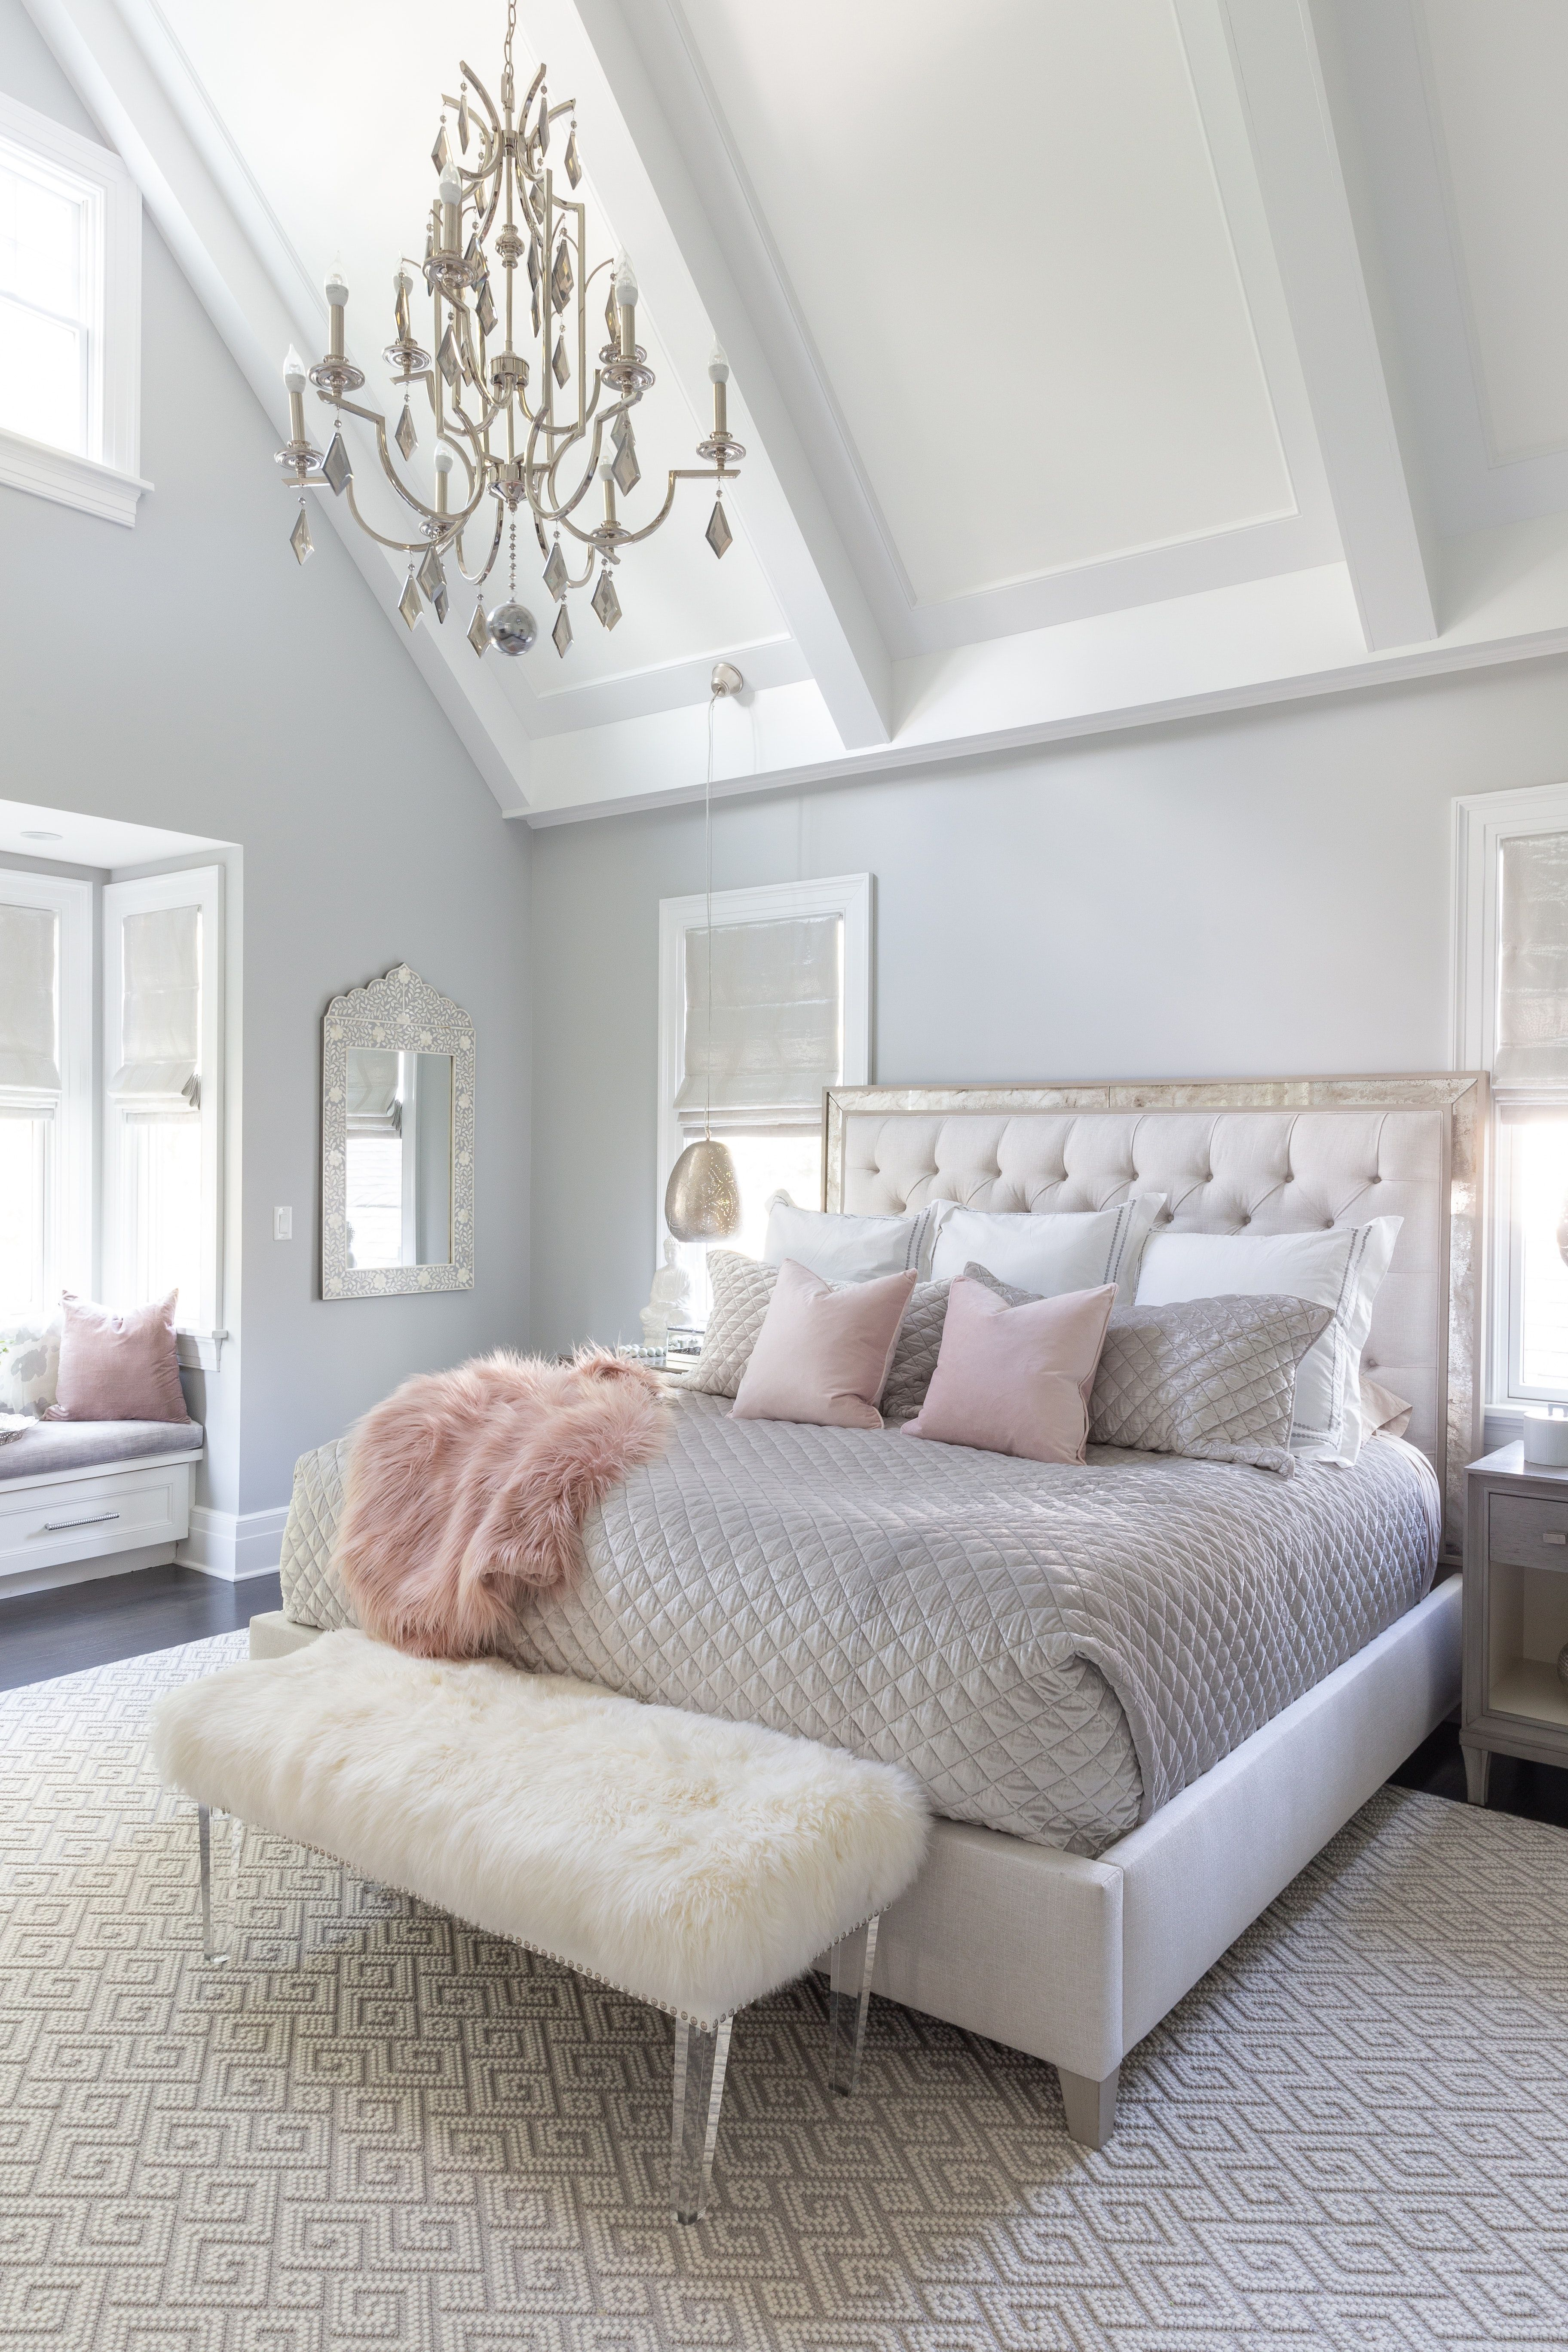 Cozy and Serene Master Bedroom Reveal. Our master bedroom is finally  complete! Admittedly, I finish… | Remodel bedroom, Houzz bedroom, Master  bedroom decor romantic